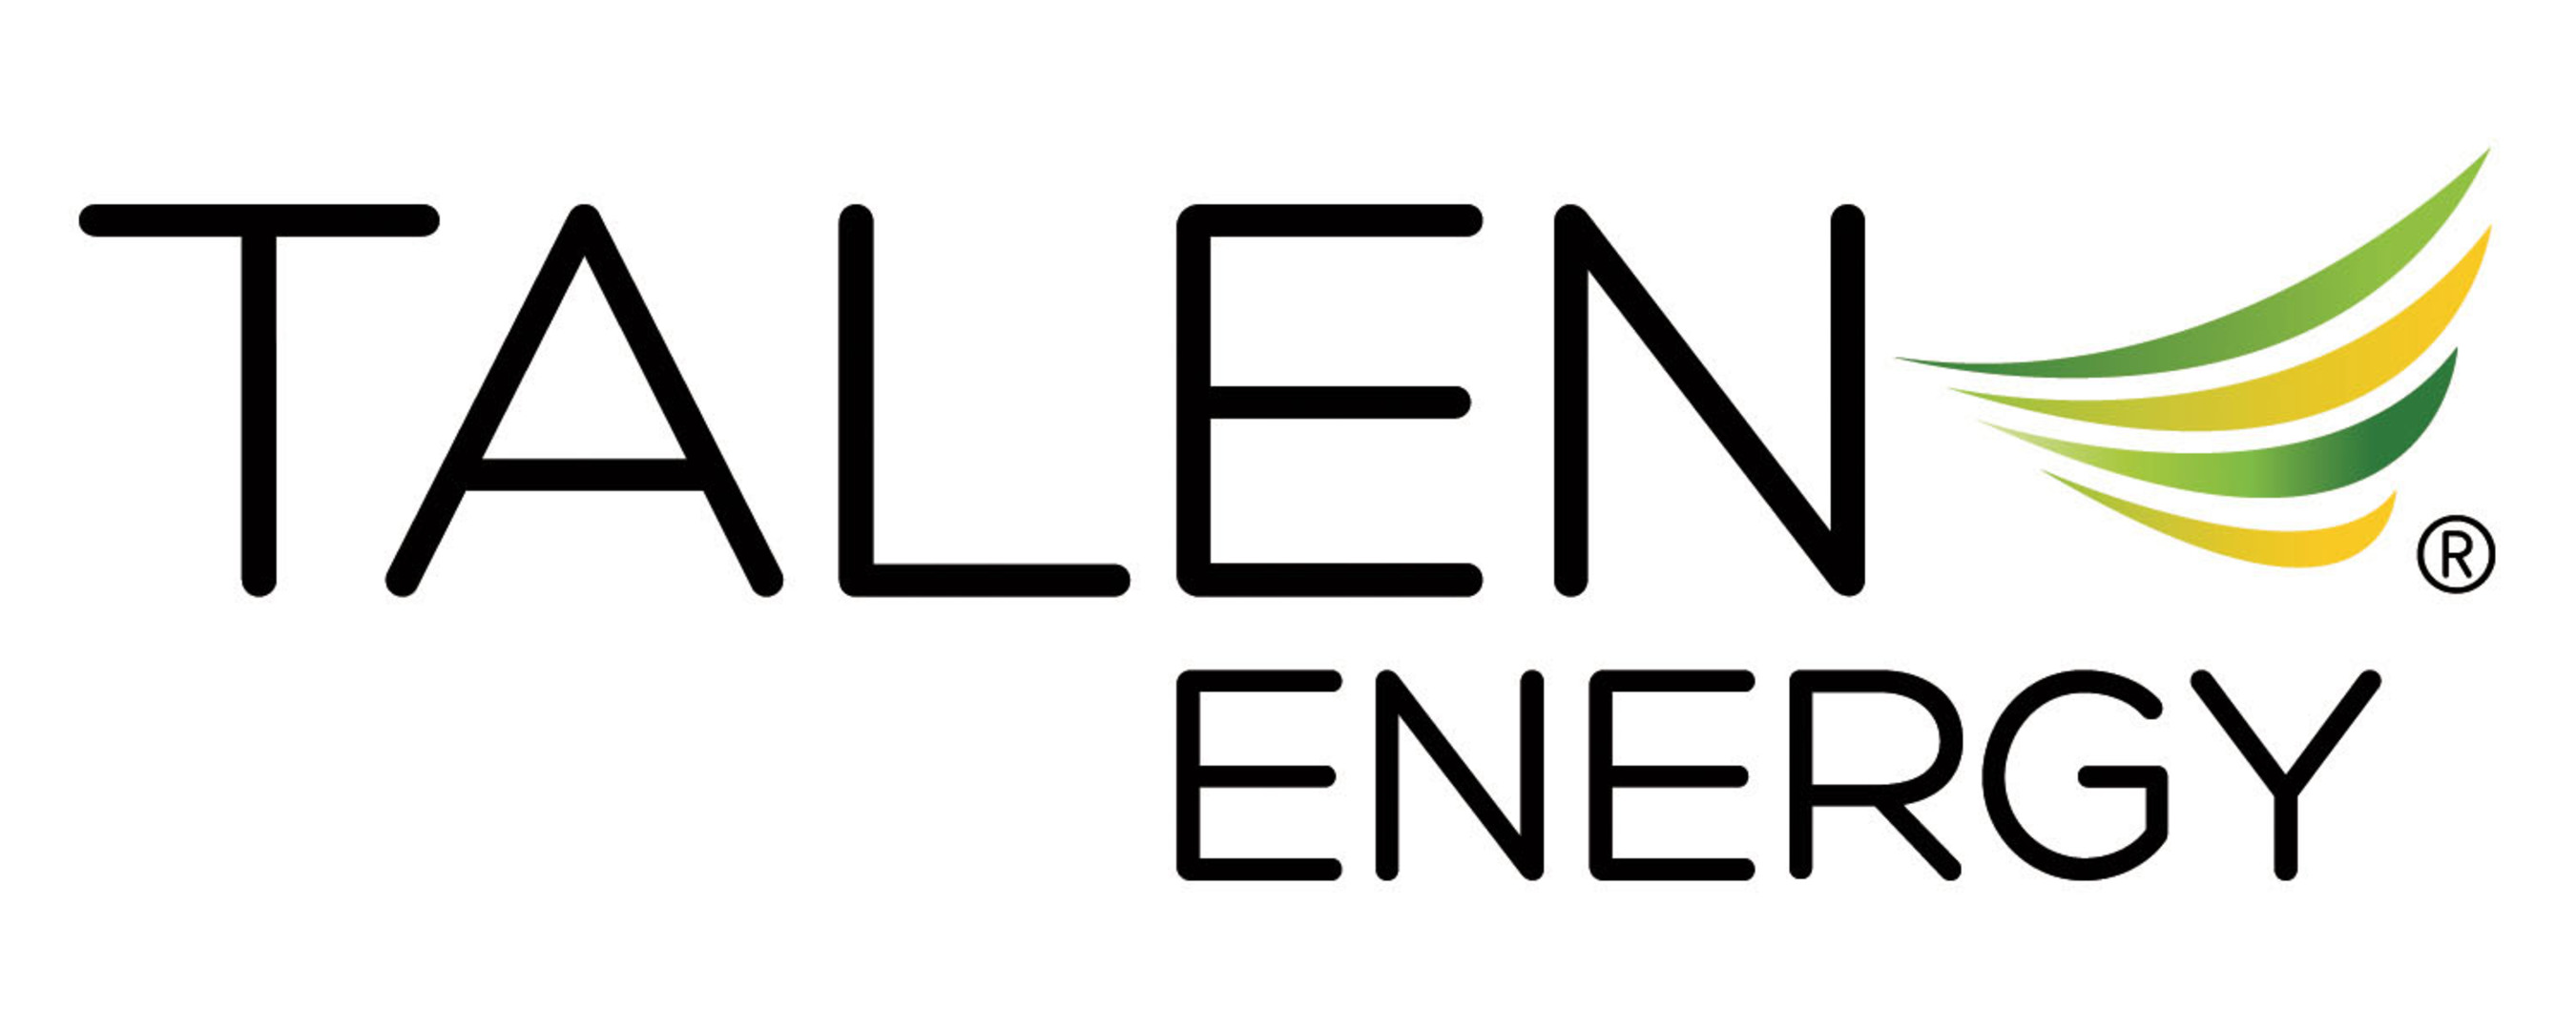 Talen Energy debuts as one of largest U.S. independent power producers (PRNewsFoto/Talen Energy Corporation)